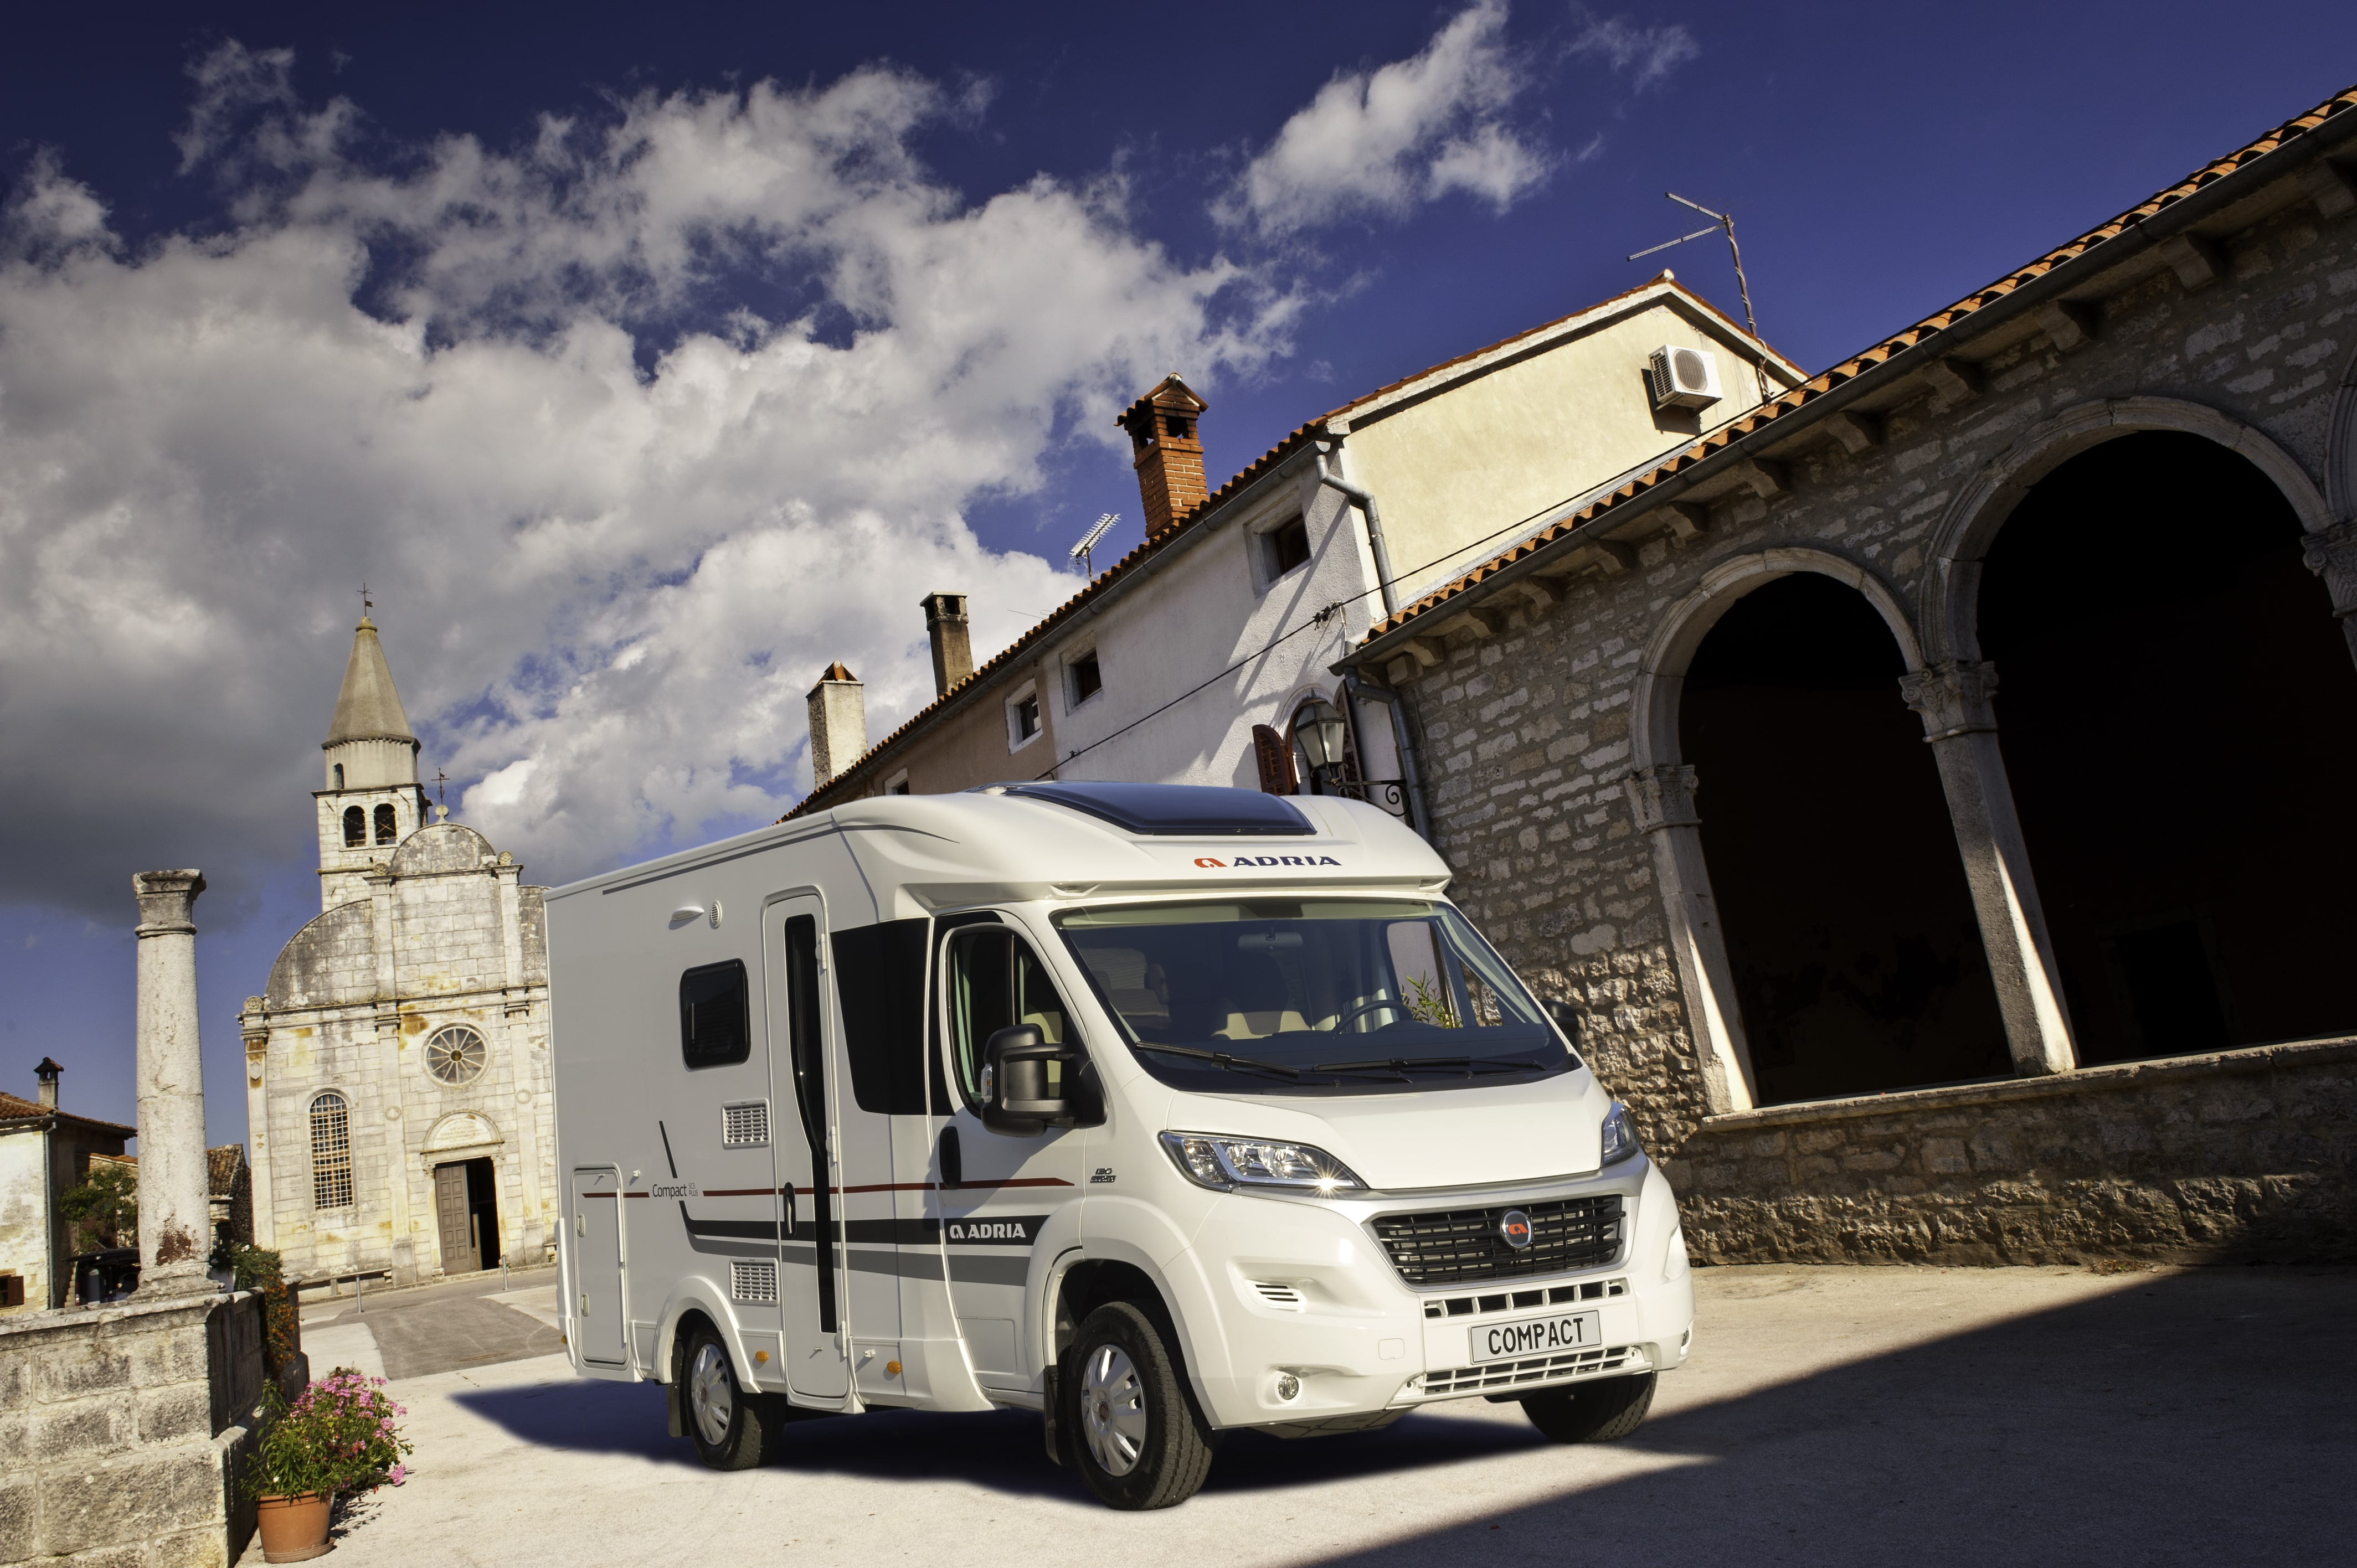 Der adria compact ideal f r st dtetrips for Wohnmobil aussendesign